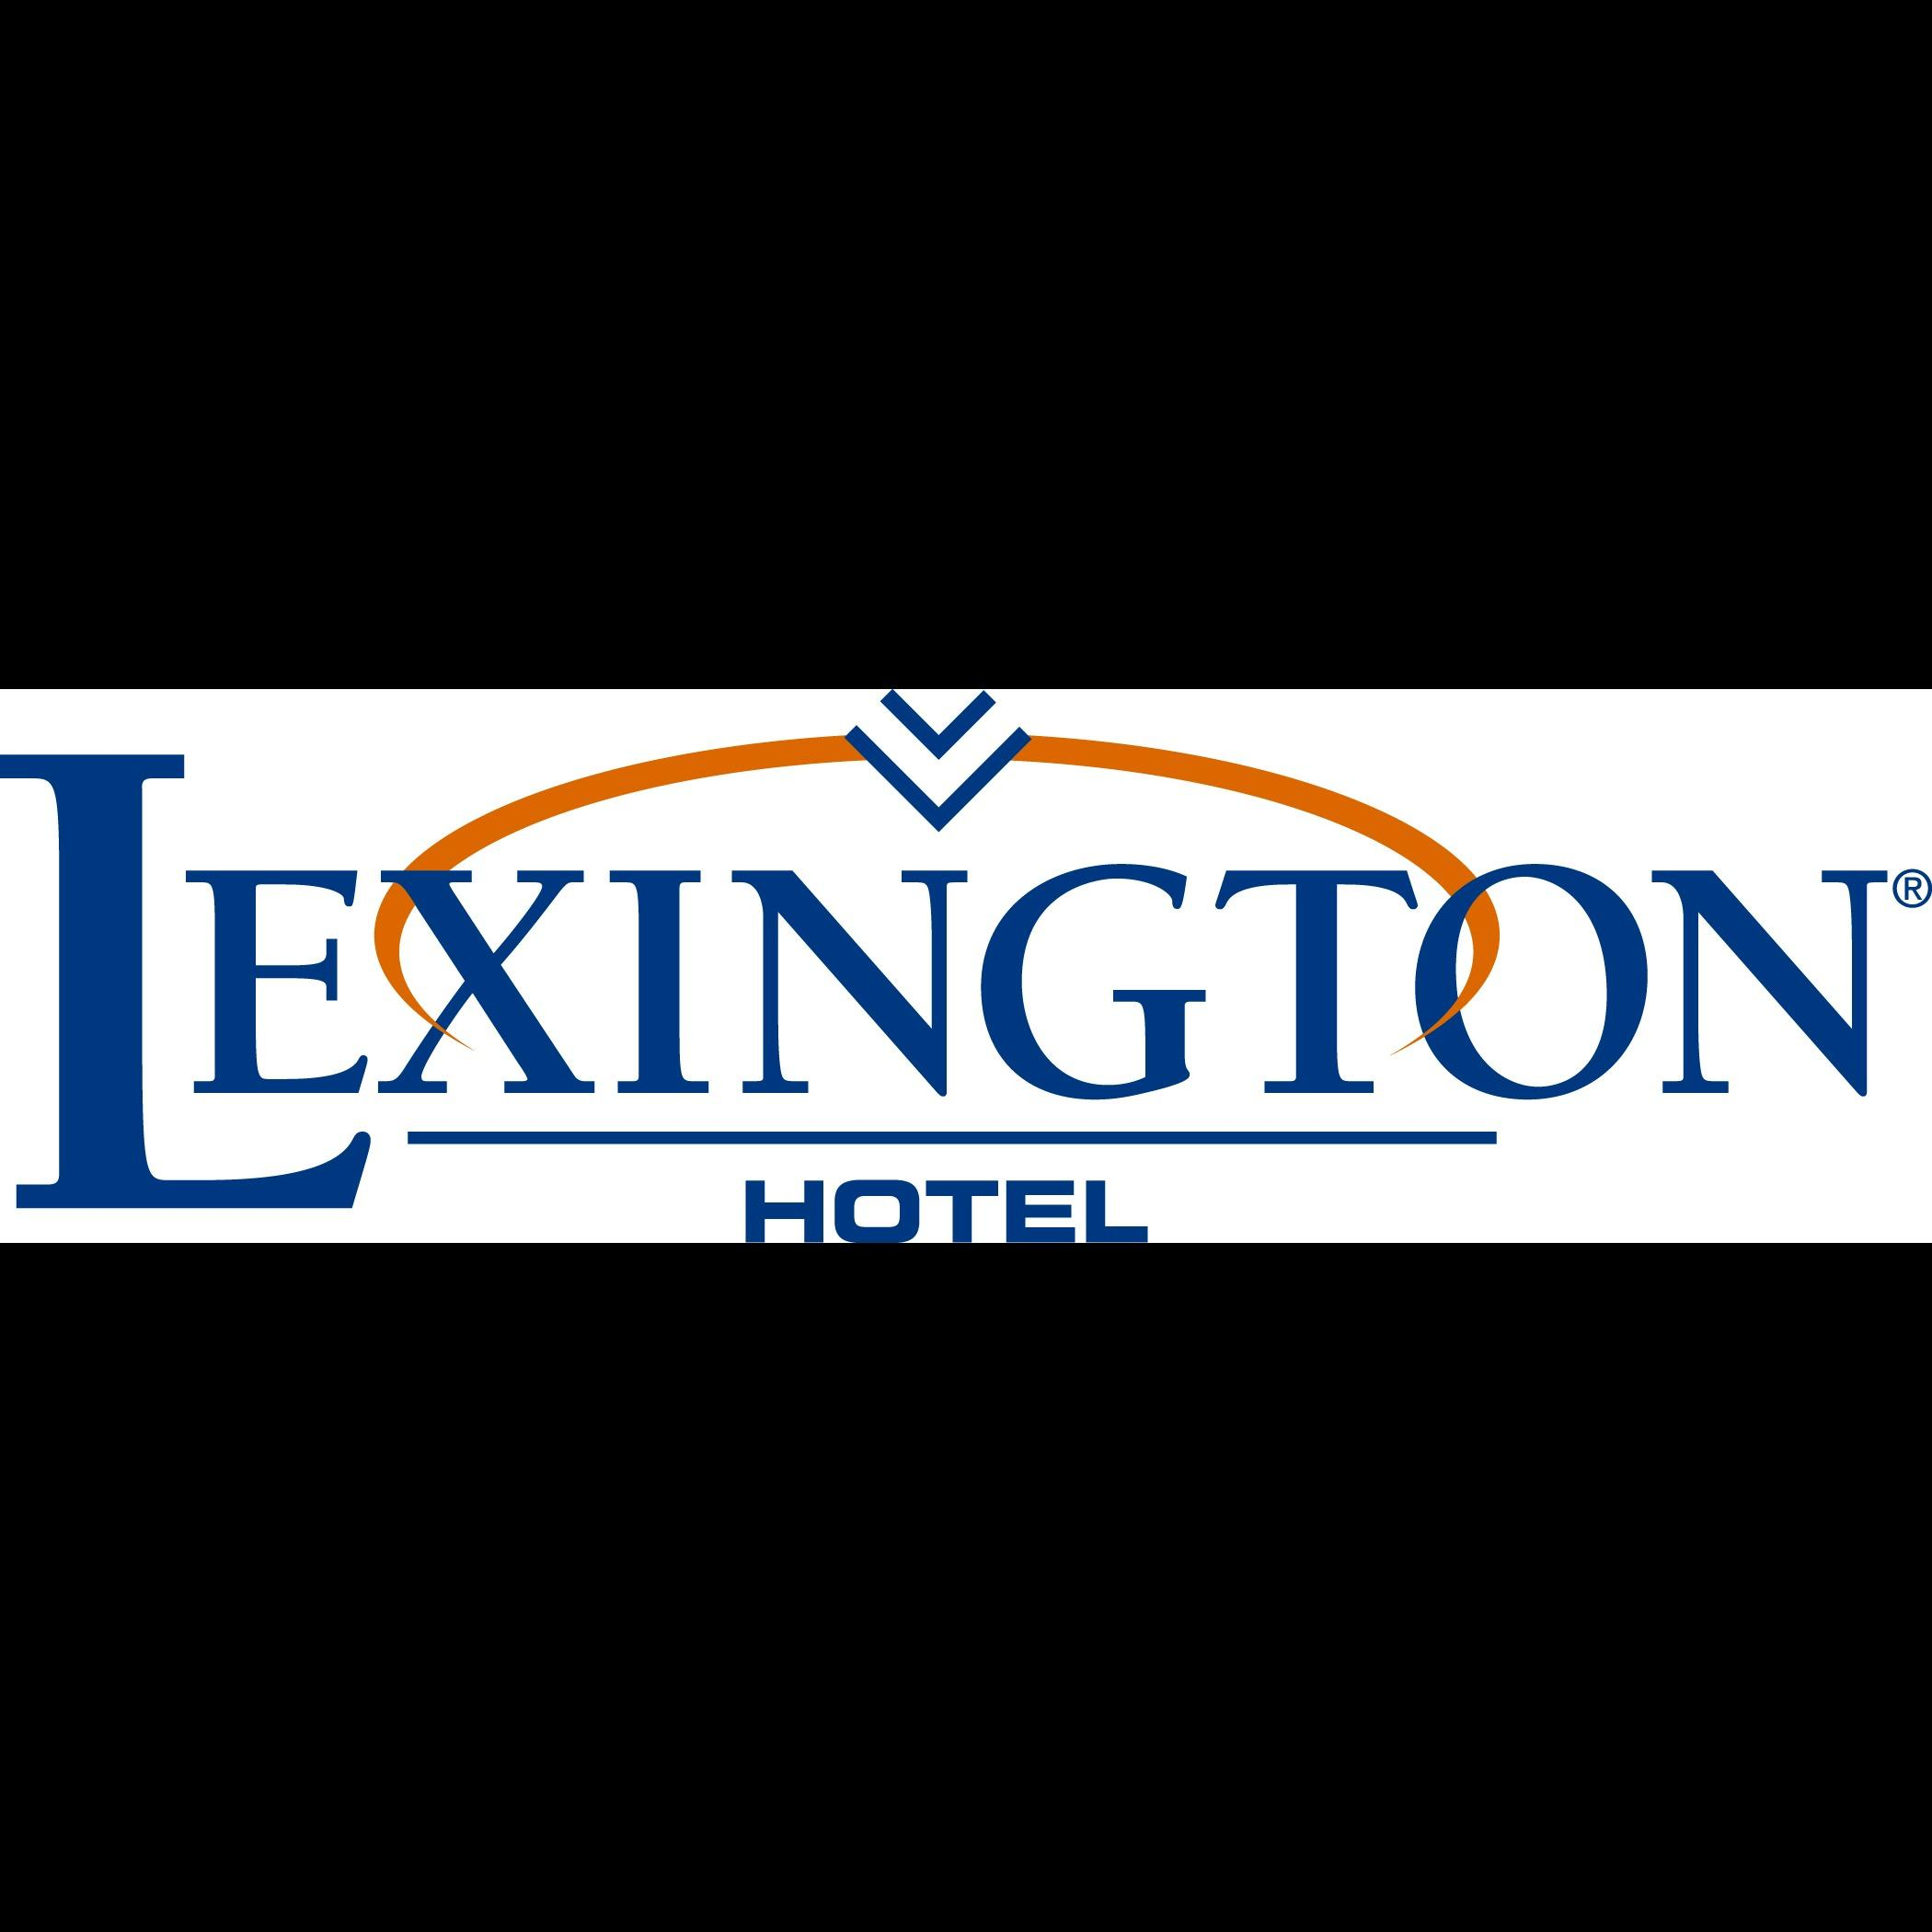 Lexington Hotel - Miami Beach